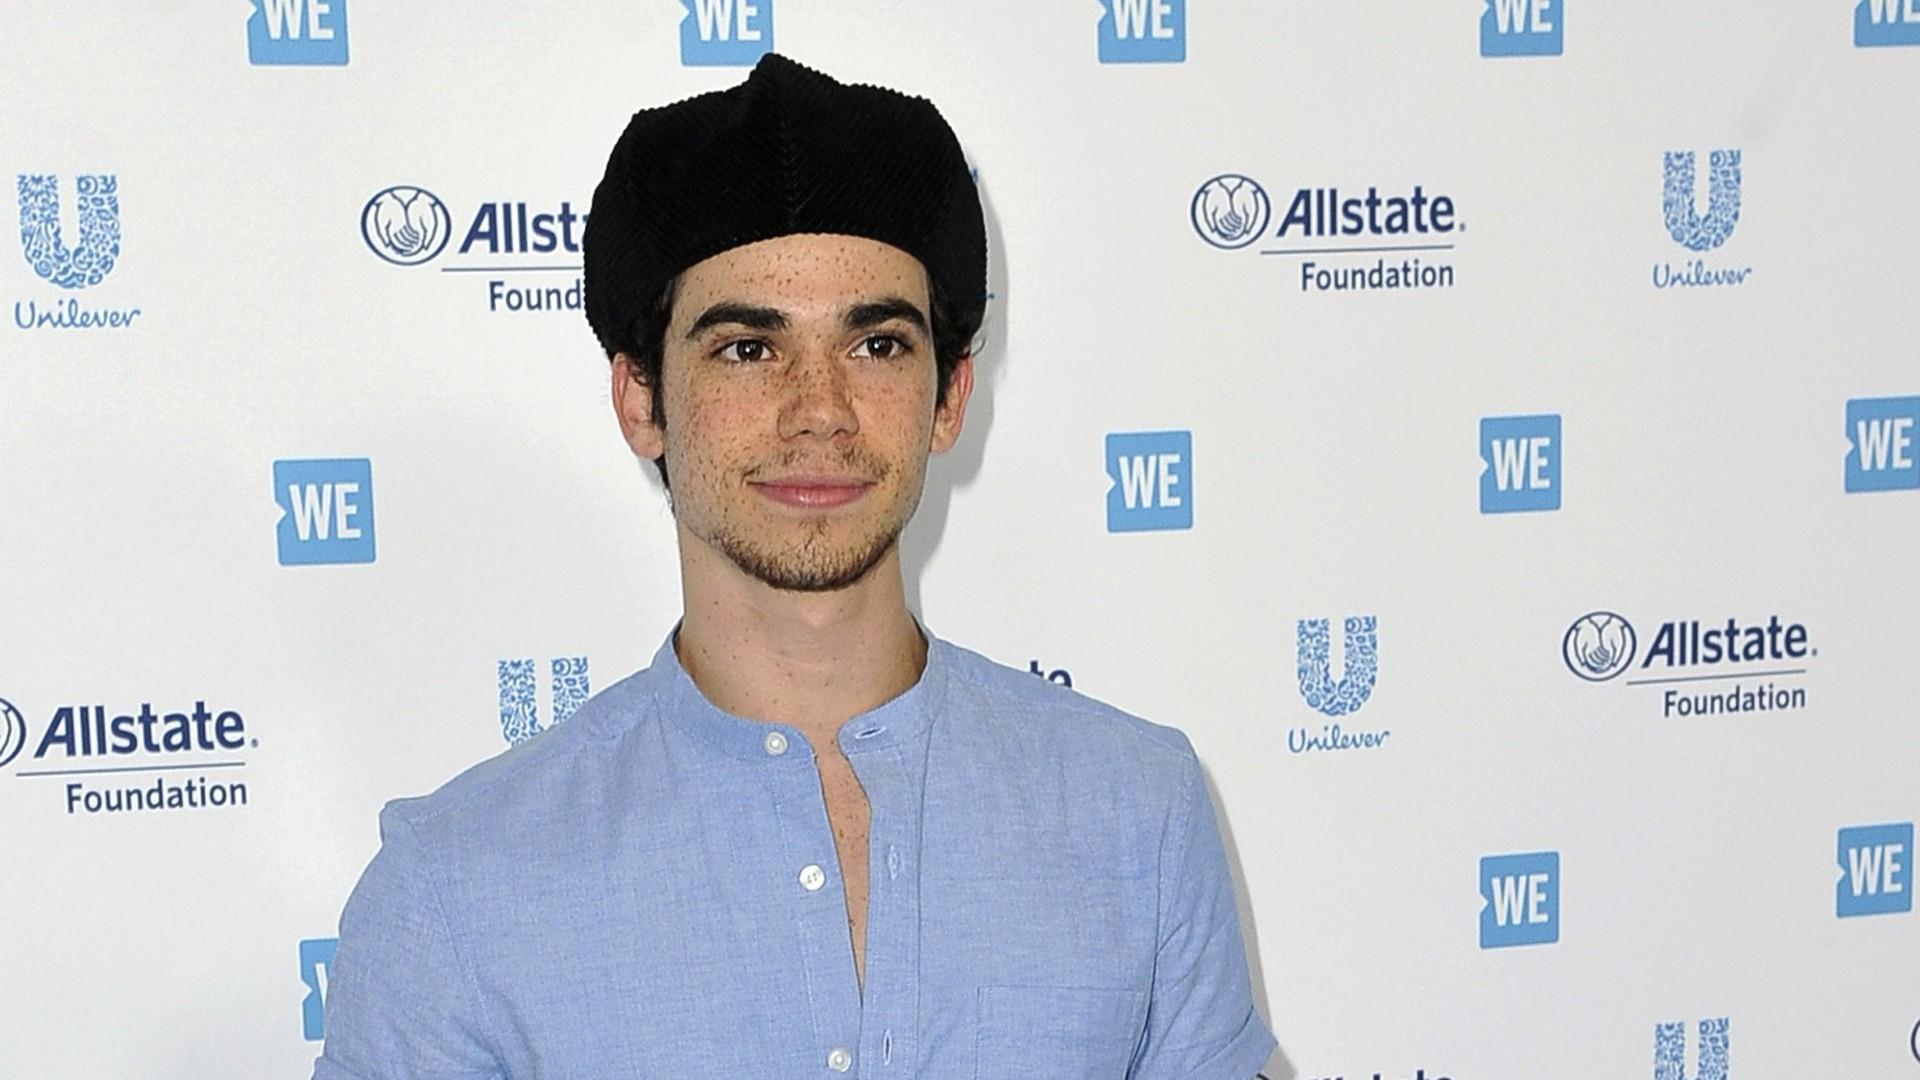 Disney Channel Star Cameron Boyce Died Of Seizure From Epilepsy Family Says